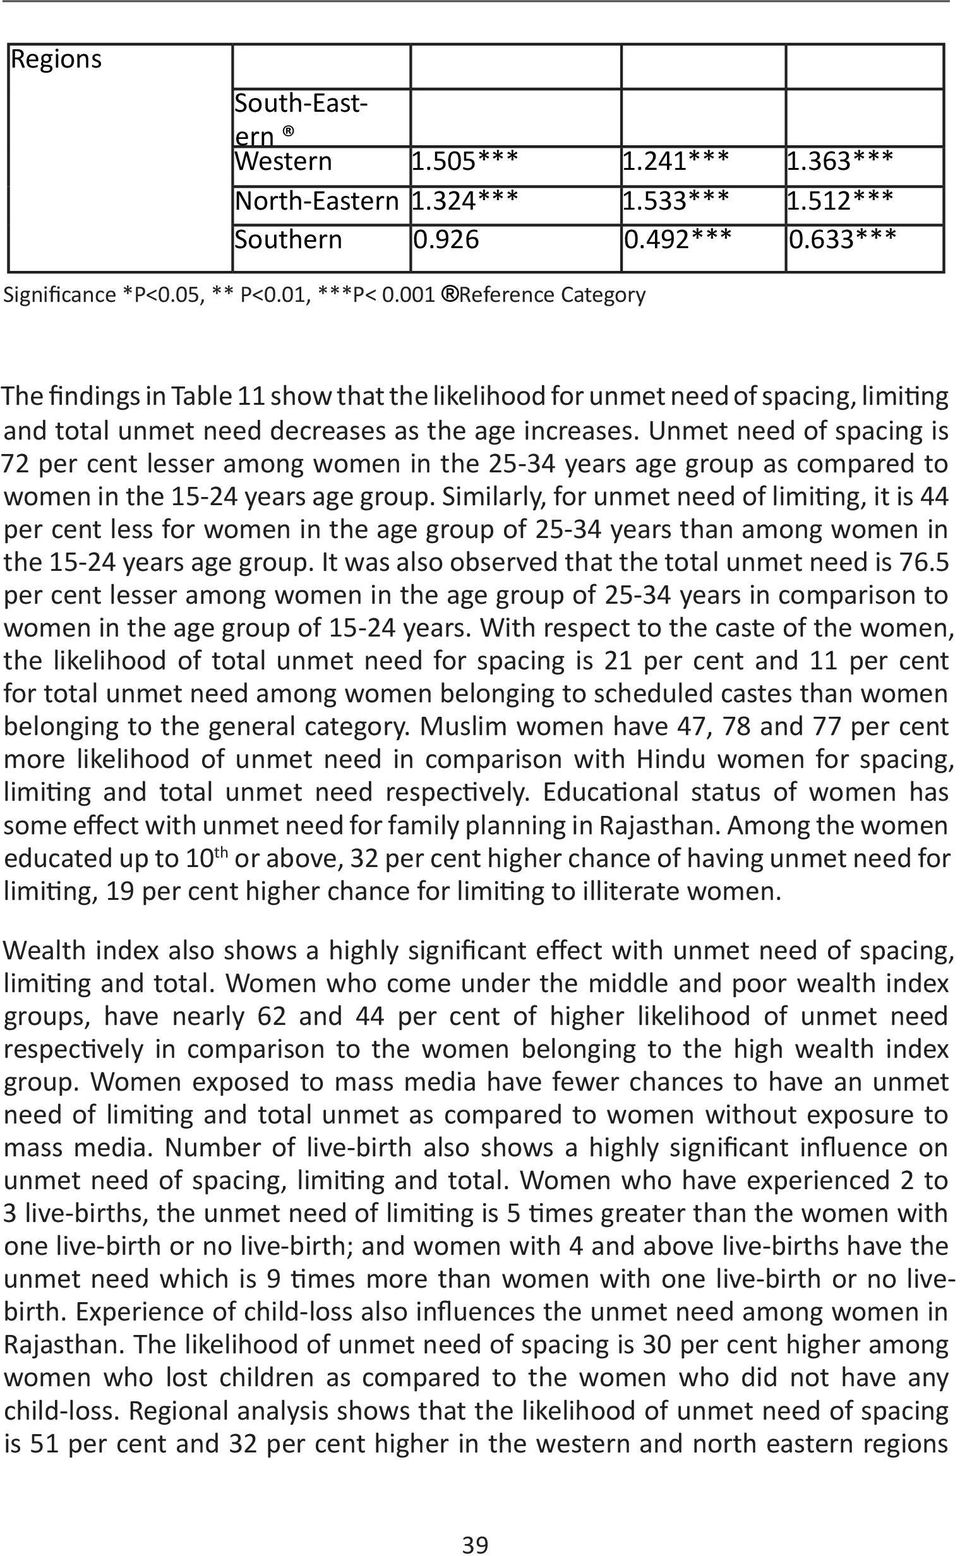 Unmet need of spacing is 72 per cent lesser among women in the 25-34 years age group as compared to women in the 15-24 years age group.